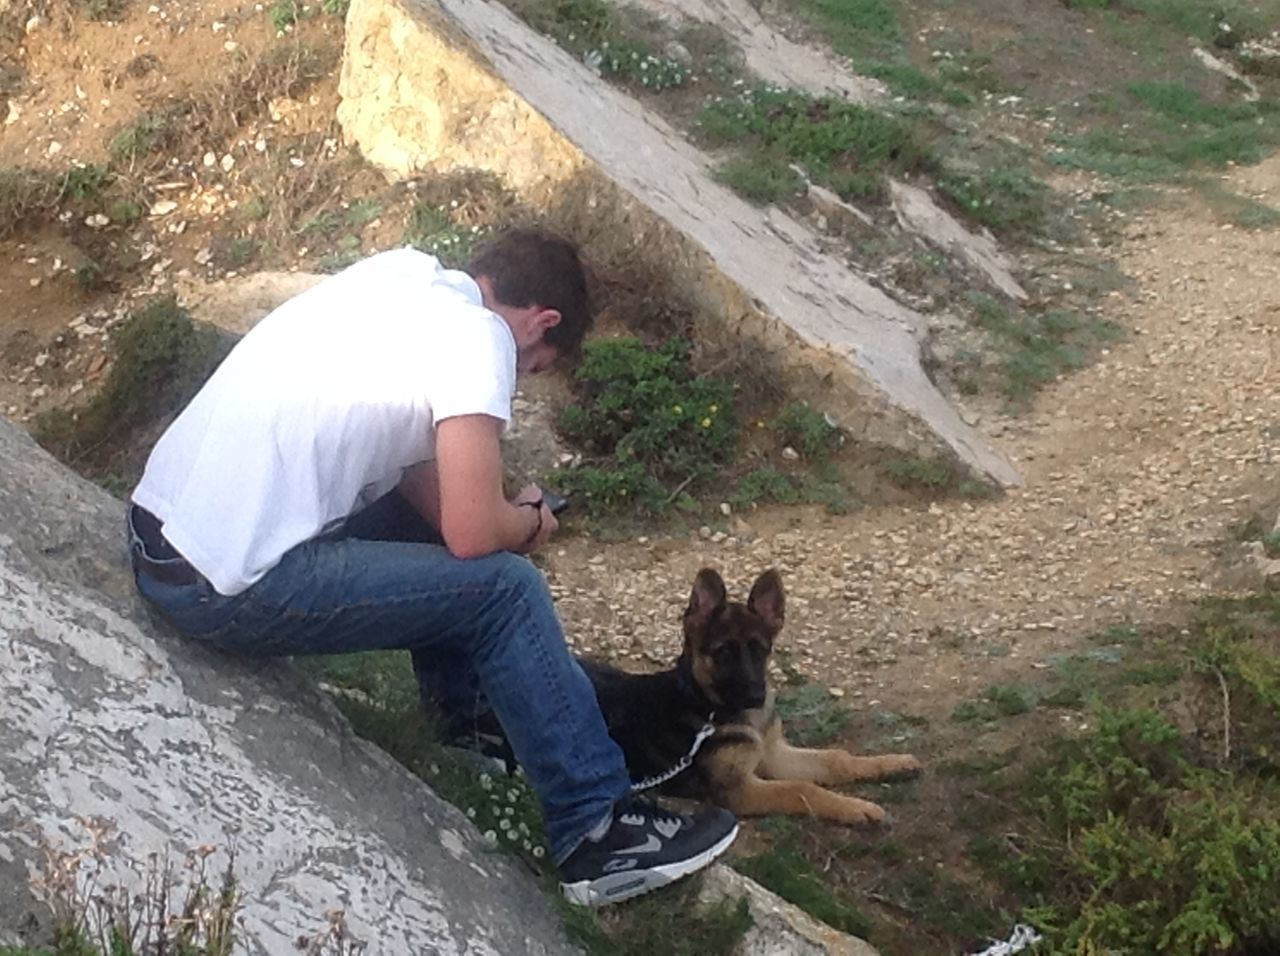 real people, one animal, pets, mammal, domestic animals, outdoors, sitting, day, high angle view, one person, leisure activity, casual clothing, lifestyles, rock - object, nature, full length, men, dog, bonding